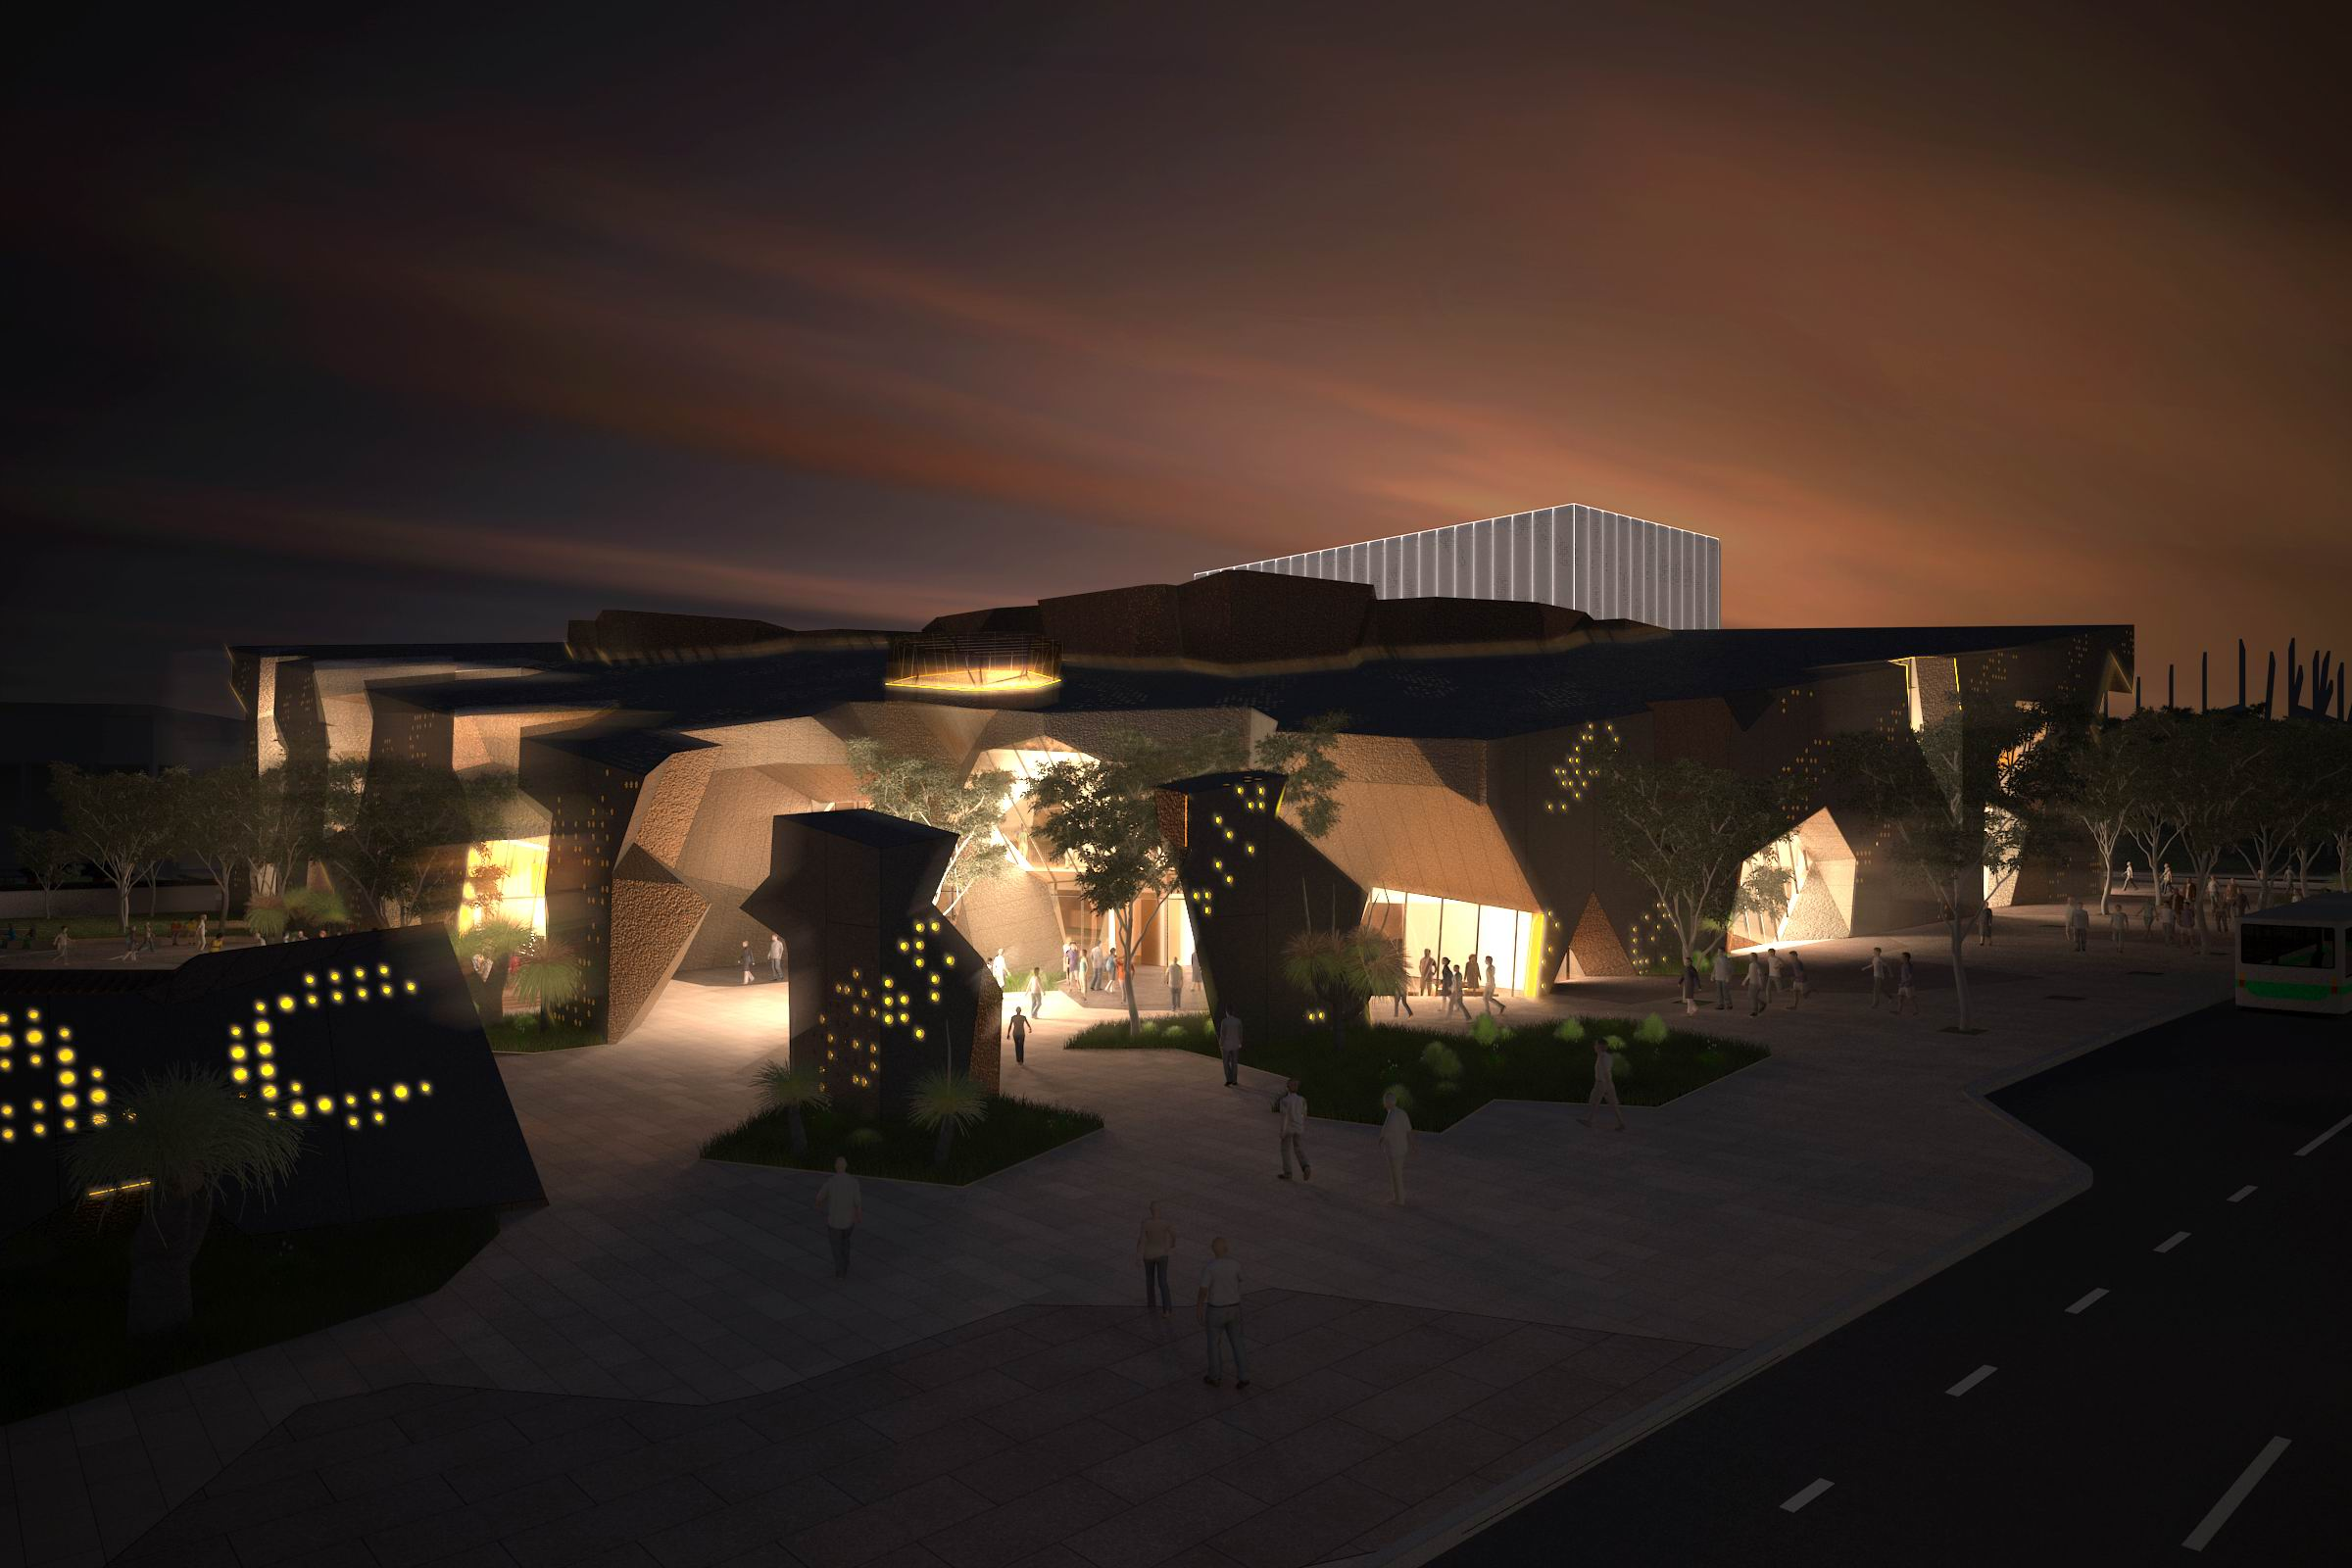 Artist's impression of the proposed performing arts centre in Joondalup.